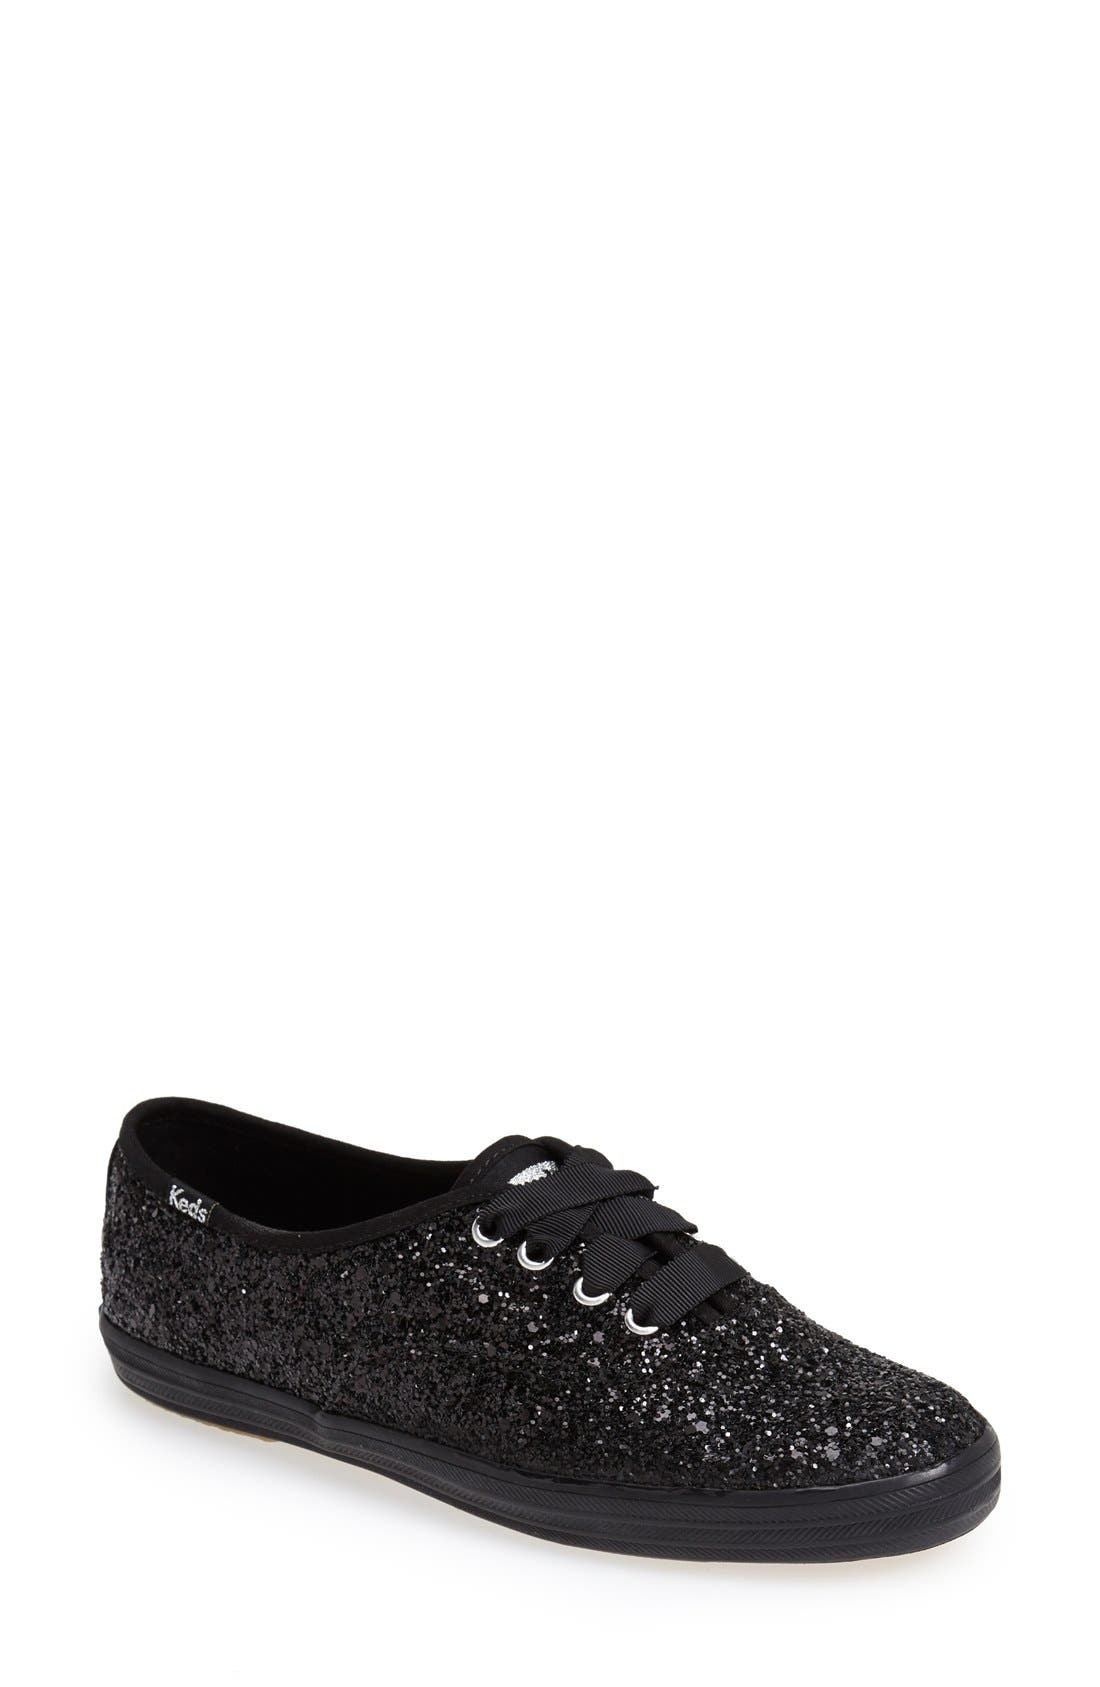 Alternate Image 1 Selected - Keds® 'Champion' Glitter Sneaker (Women)